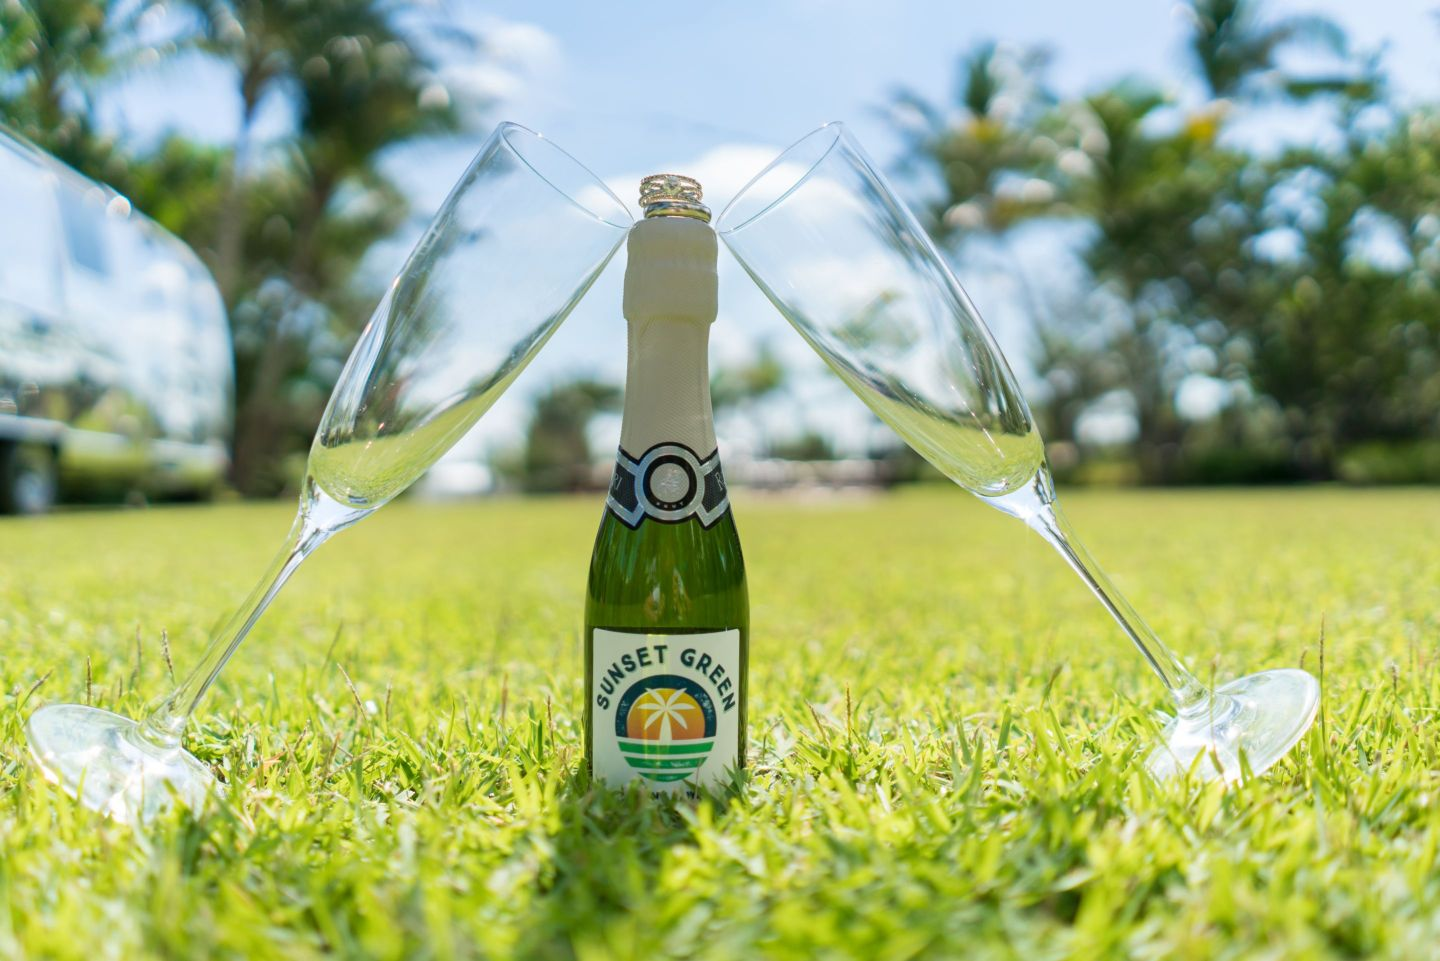 Sunset-Green-Champagne-On-Grass-2-1440x961 Coastal Party Inspiration: How to Host a Key West Style Party